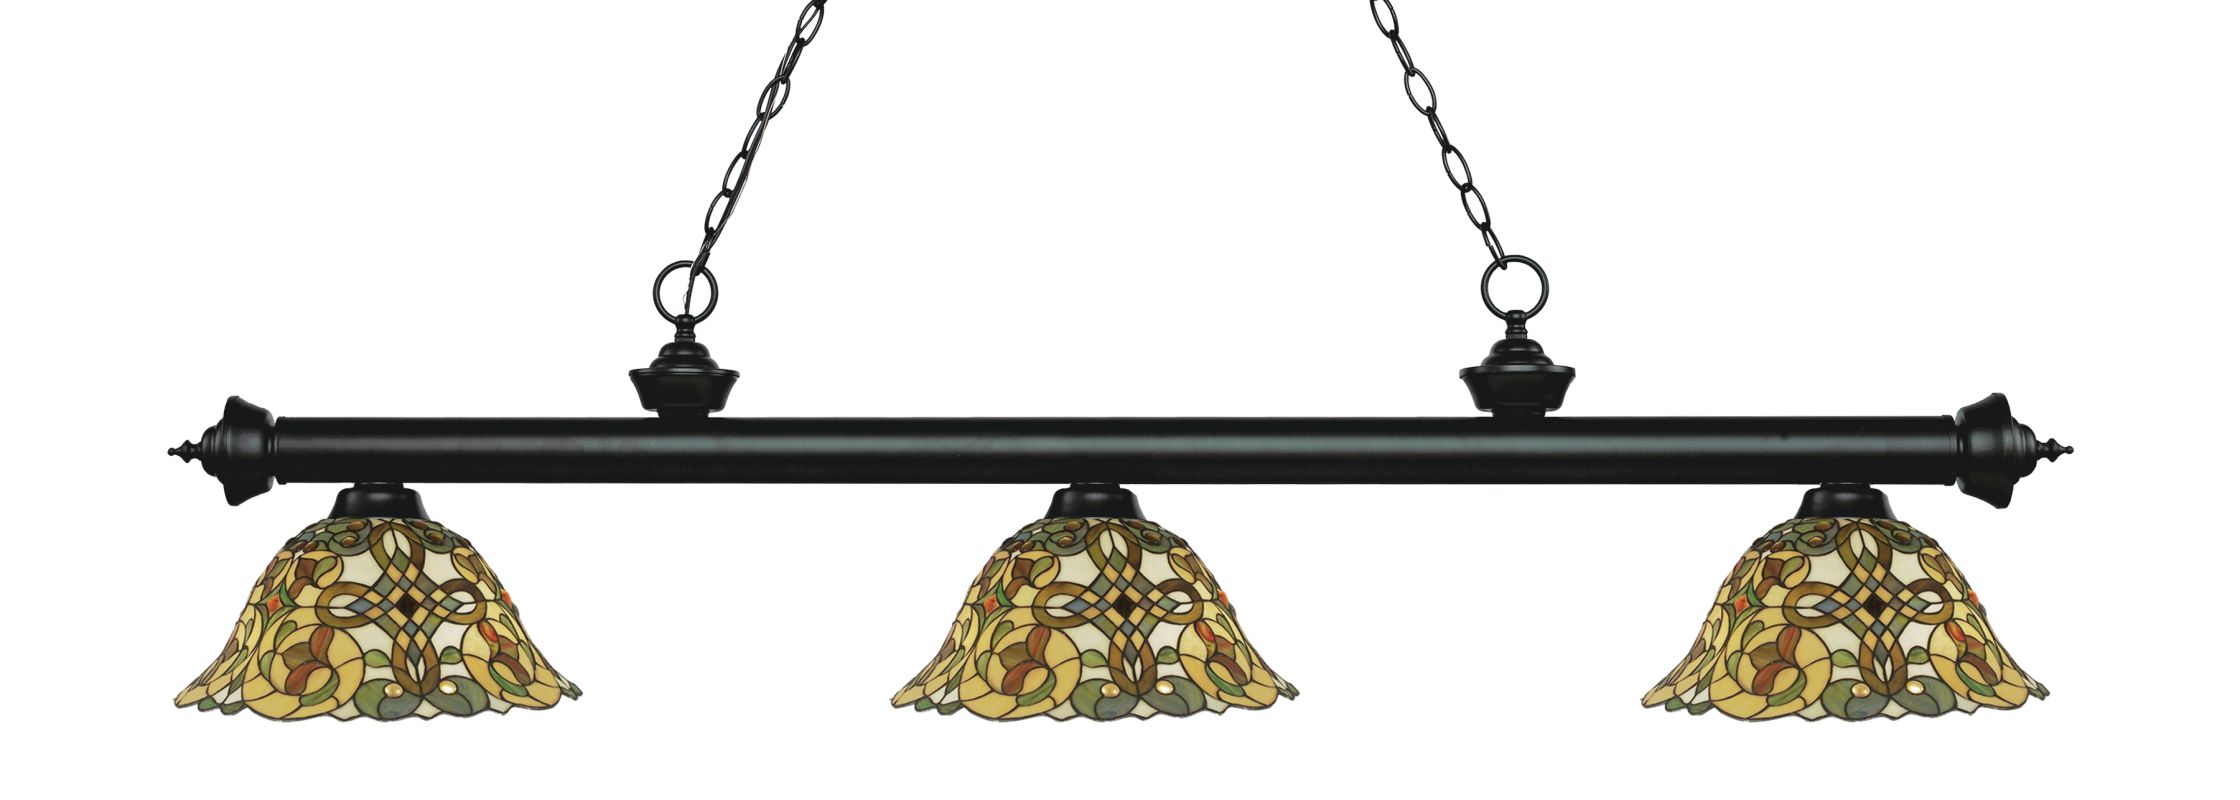 Z-Lite 200-3-R14A Riviera 3 Light Island/Billiard Chandelier with Sale $788.00 ITEM: bci2734660 ID#:200-3MB-R14A UPC: 685659054392 :